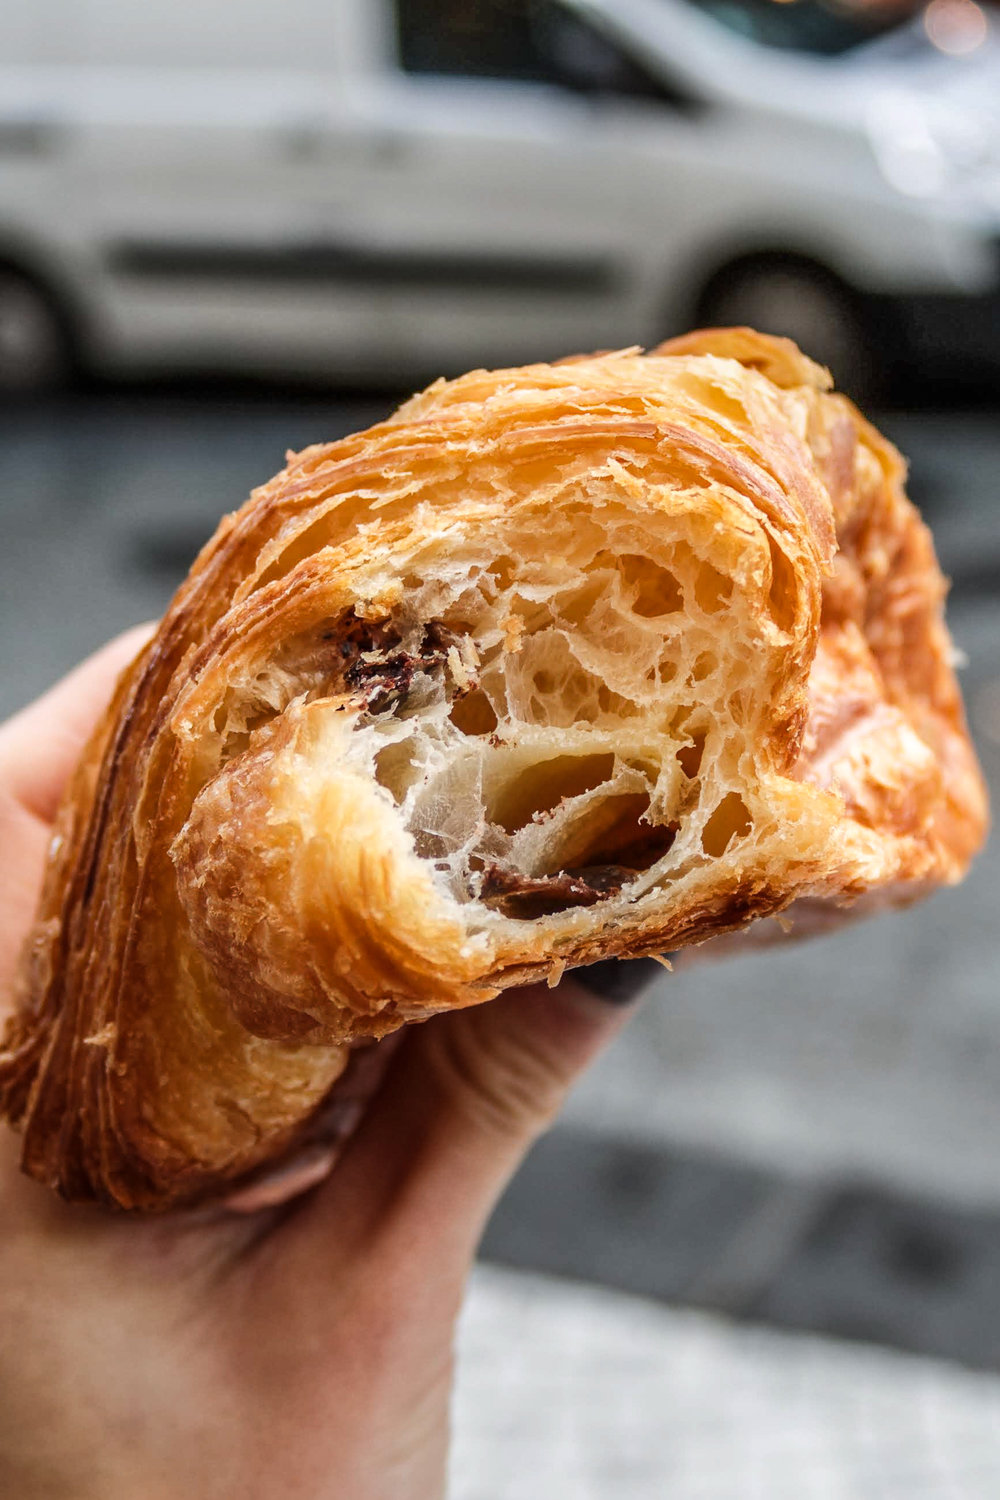 Croissant magic from Stohrer